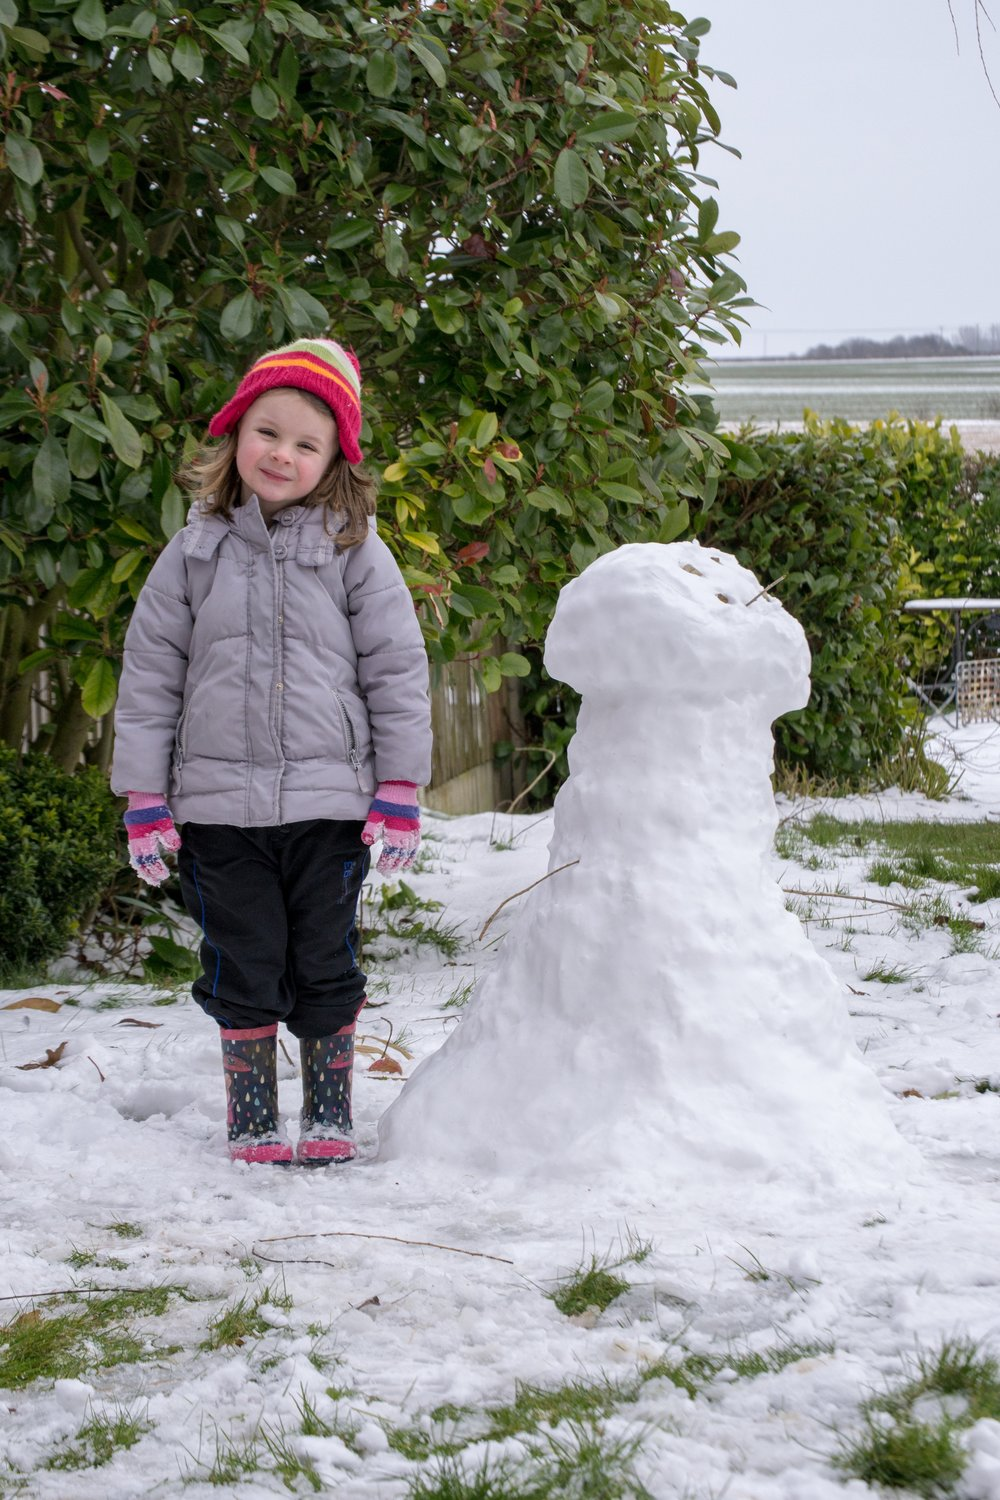 Sophia's rather unfortunately shaped snowman